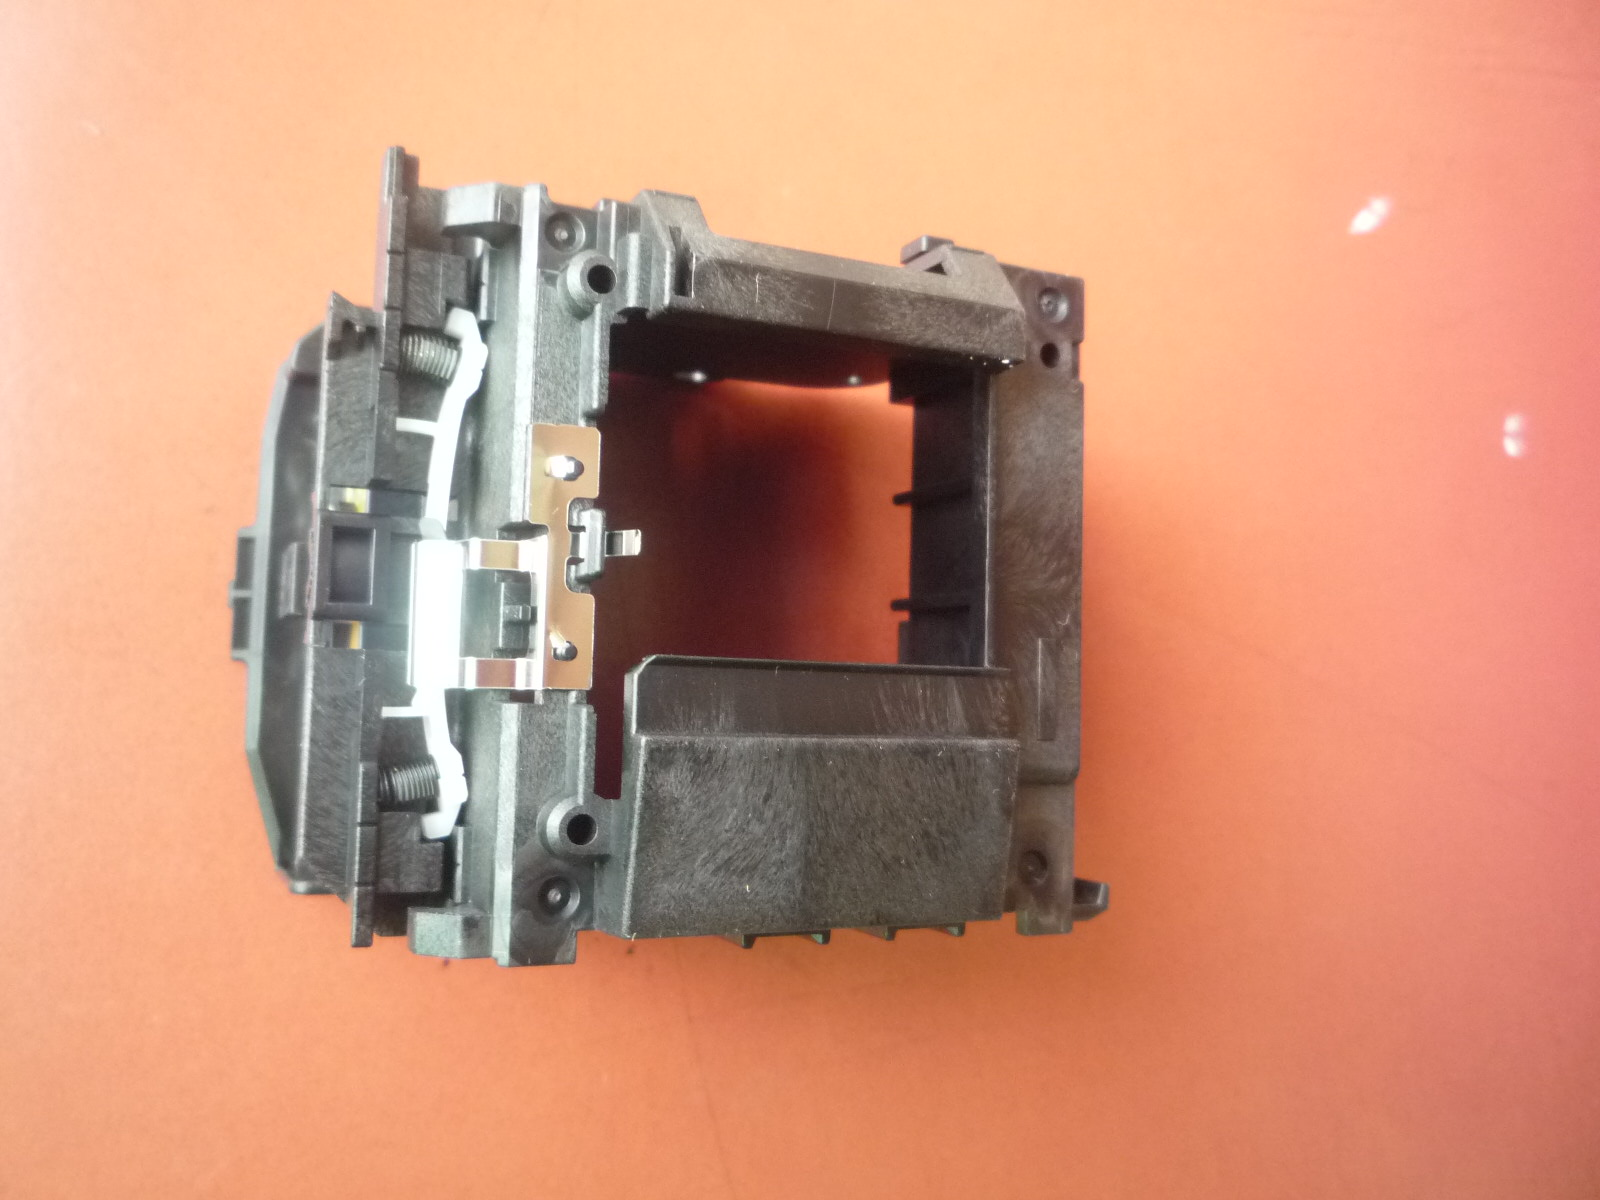 New And Original Carriage Assembly For Epson L220 L455 L300 L350 Timing Belt L110 L210 Aeproductgetsubject